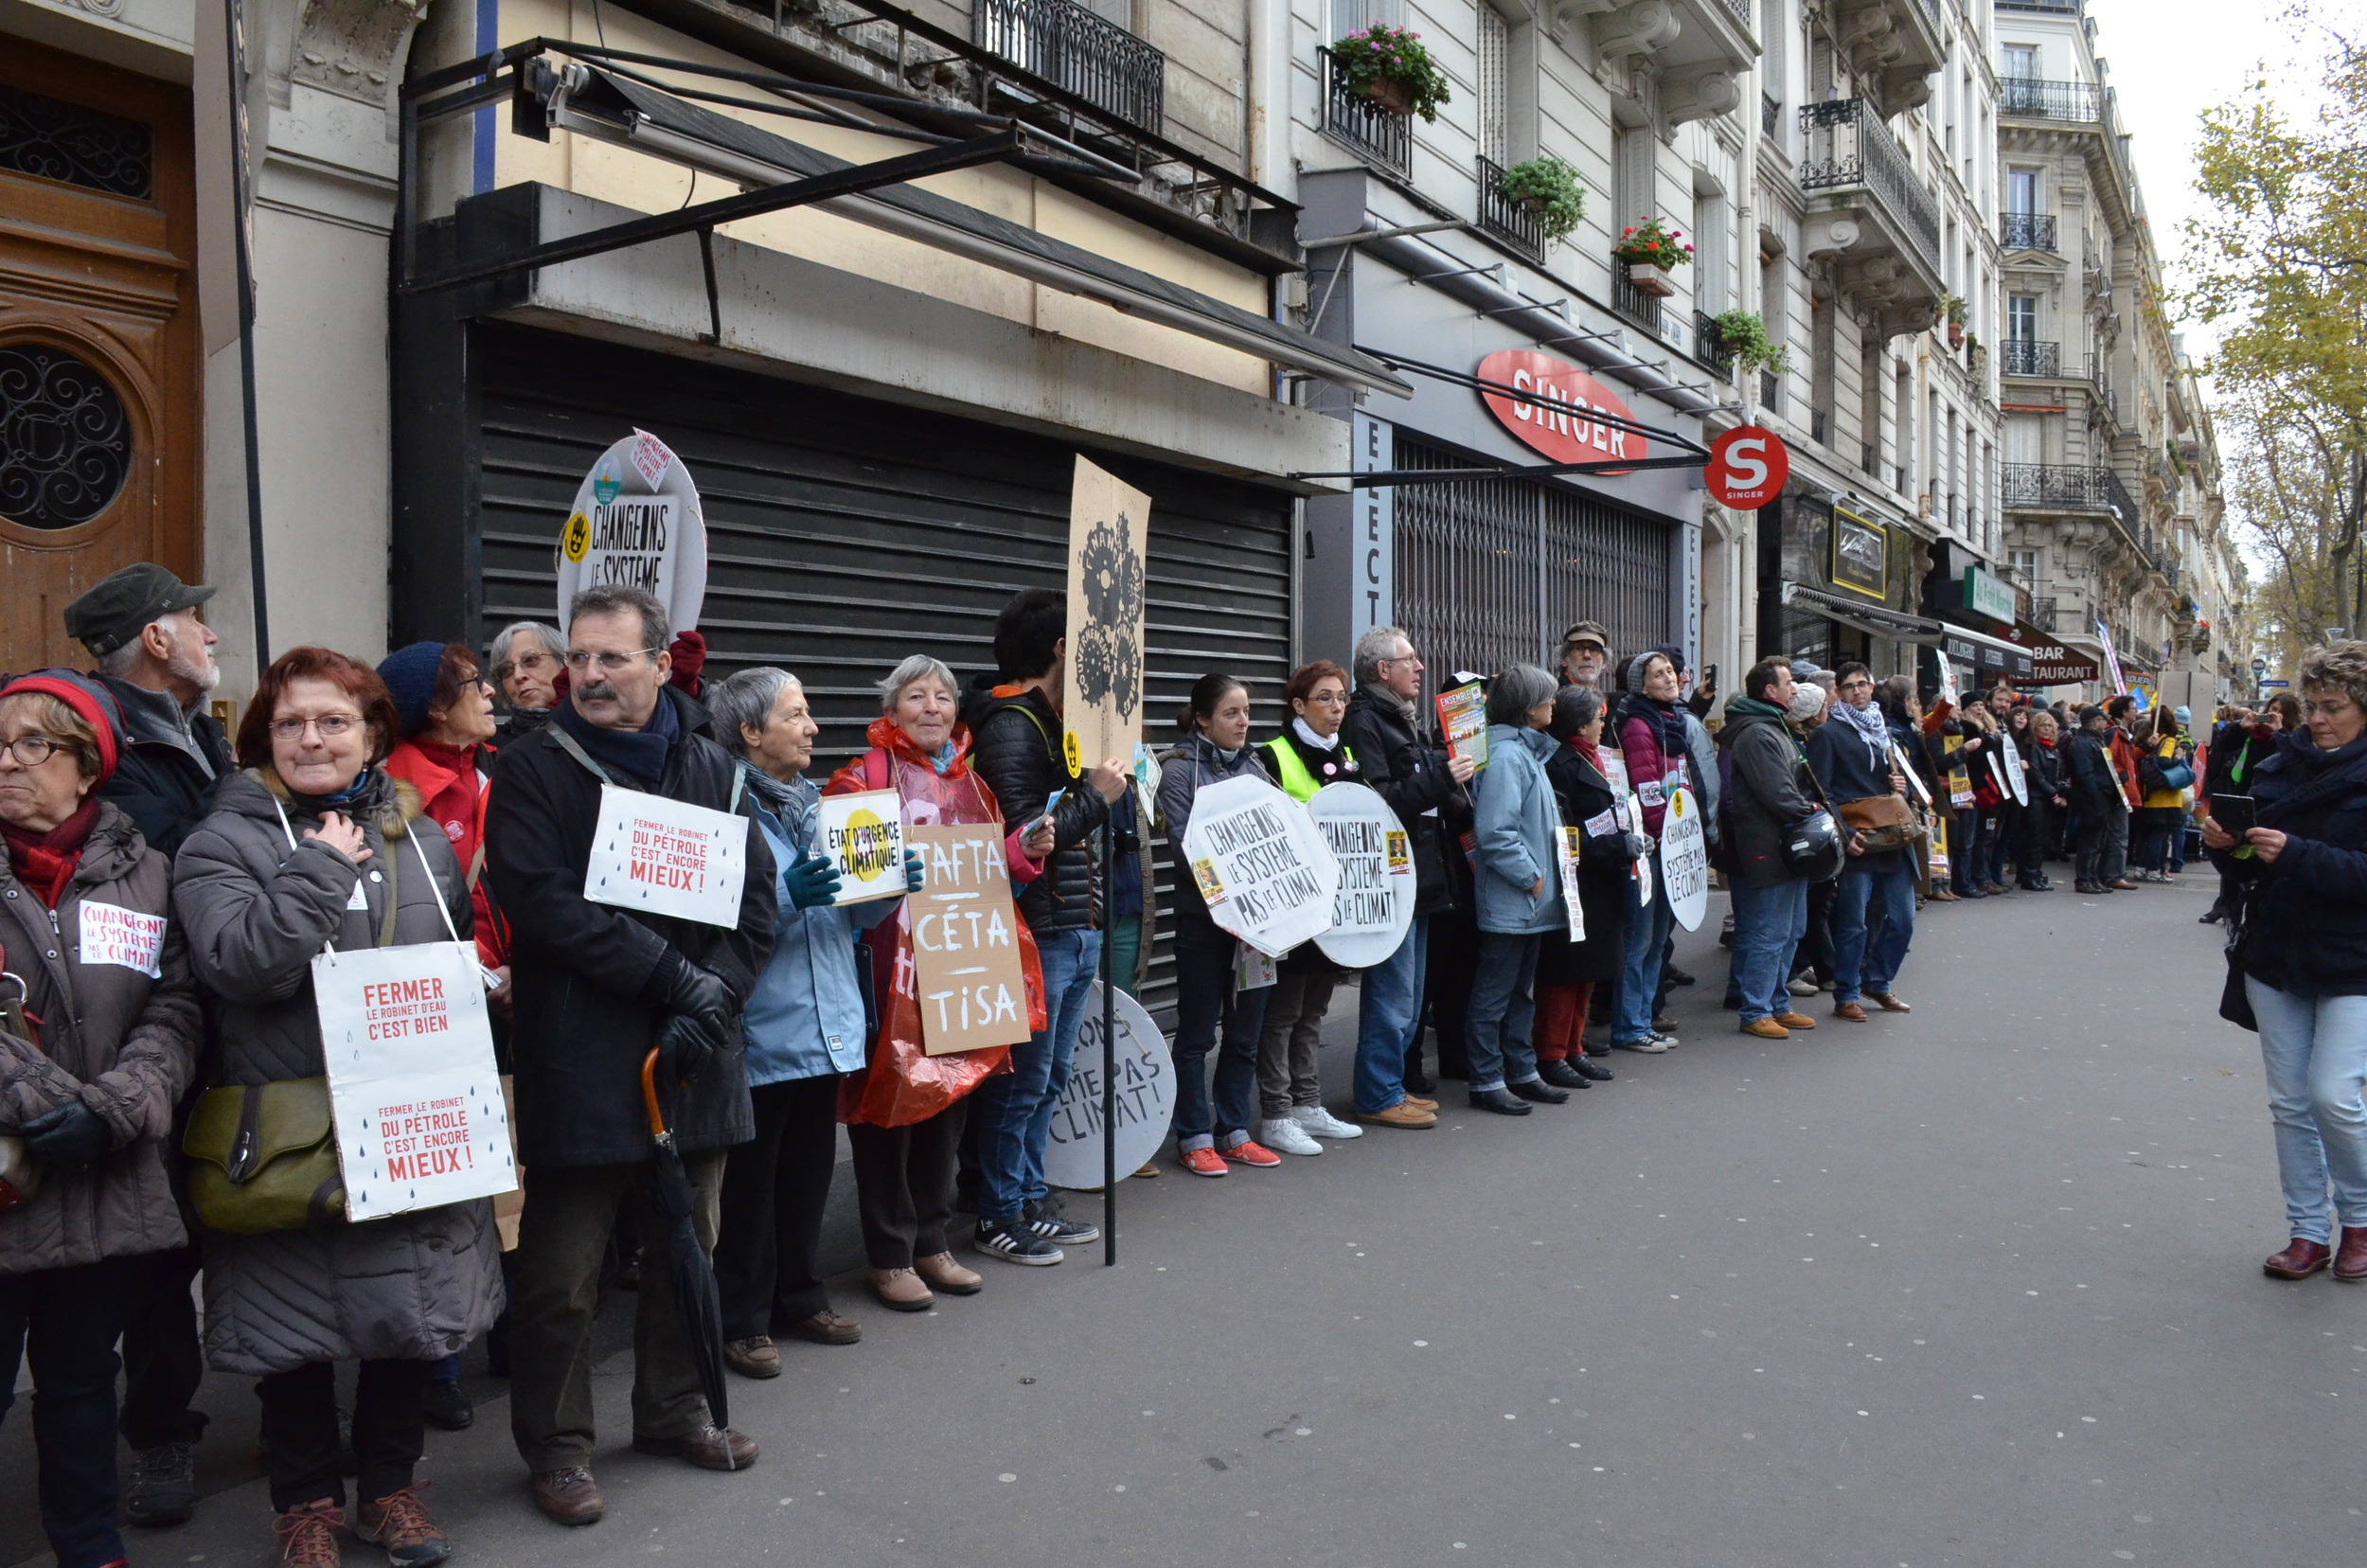 Demonstrators form a human chain along Boulevard Voltaire, marking the 3km-long route of the banned march.